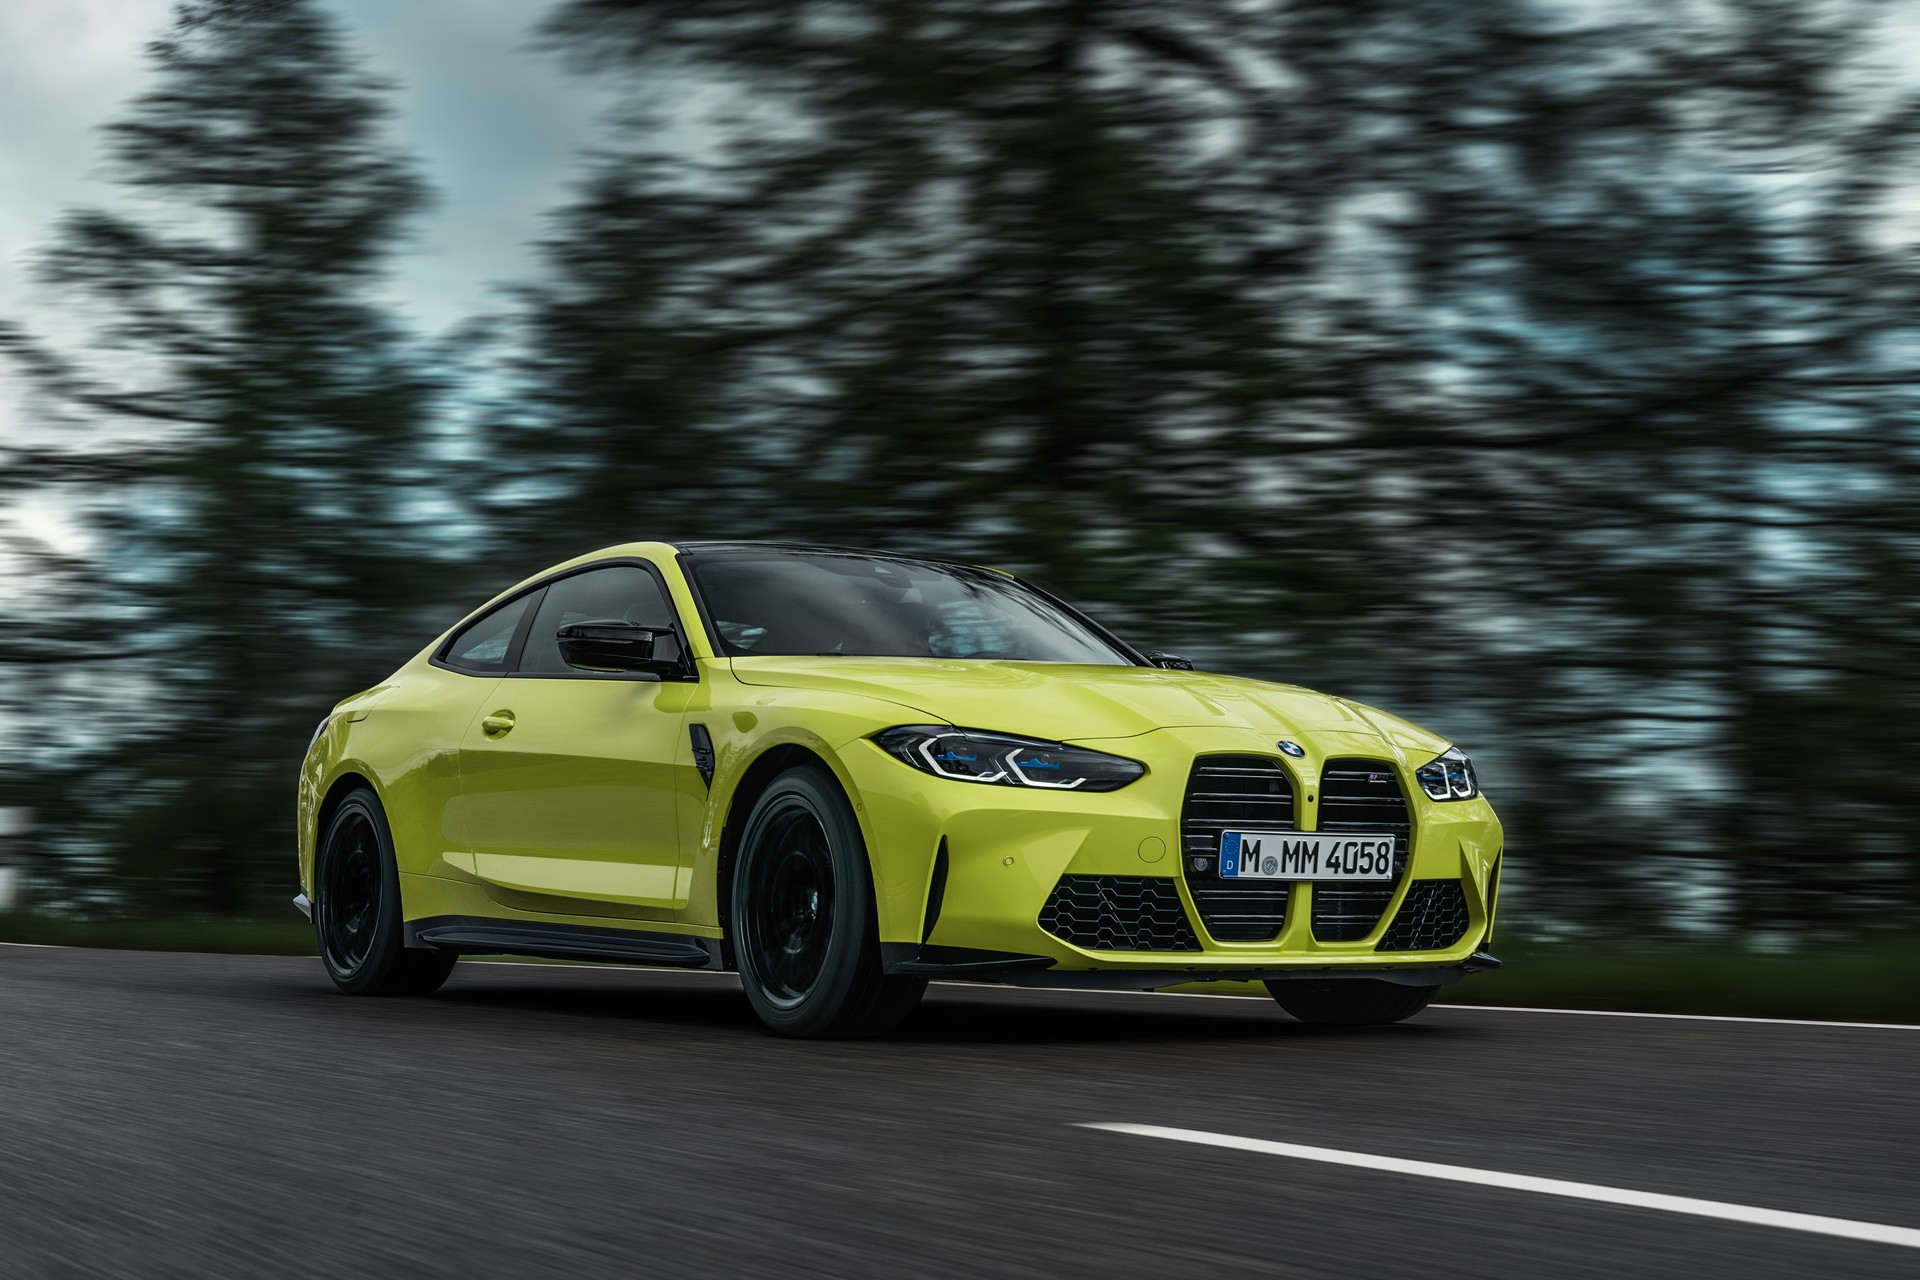 2021-bmw-m3-and-m4-25.jpg